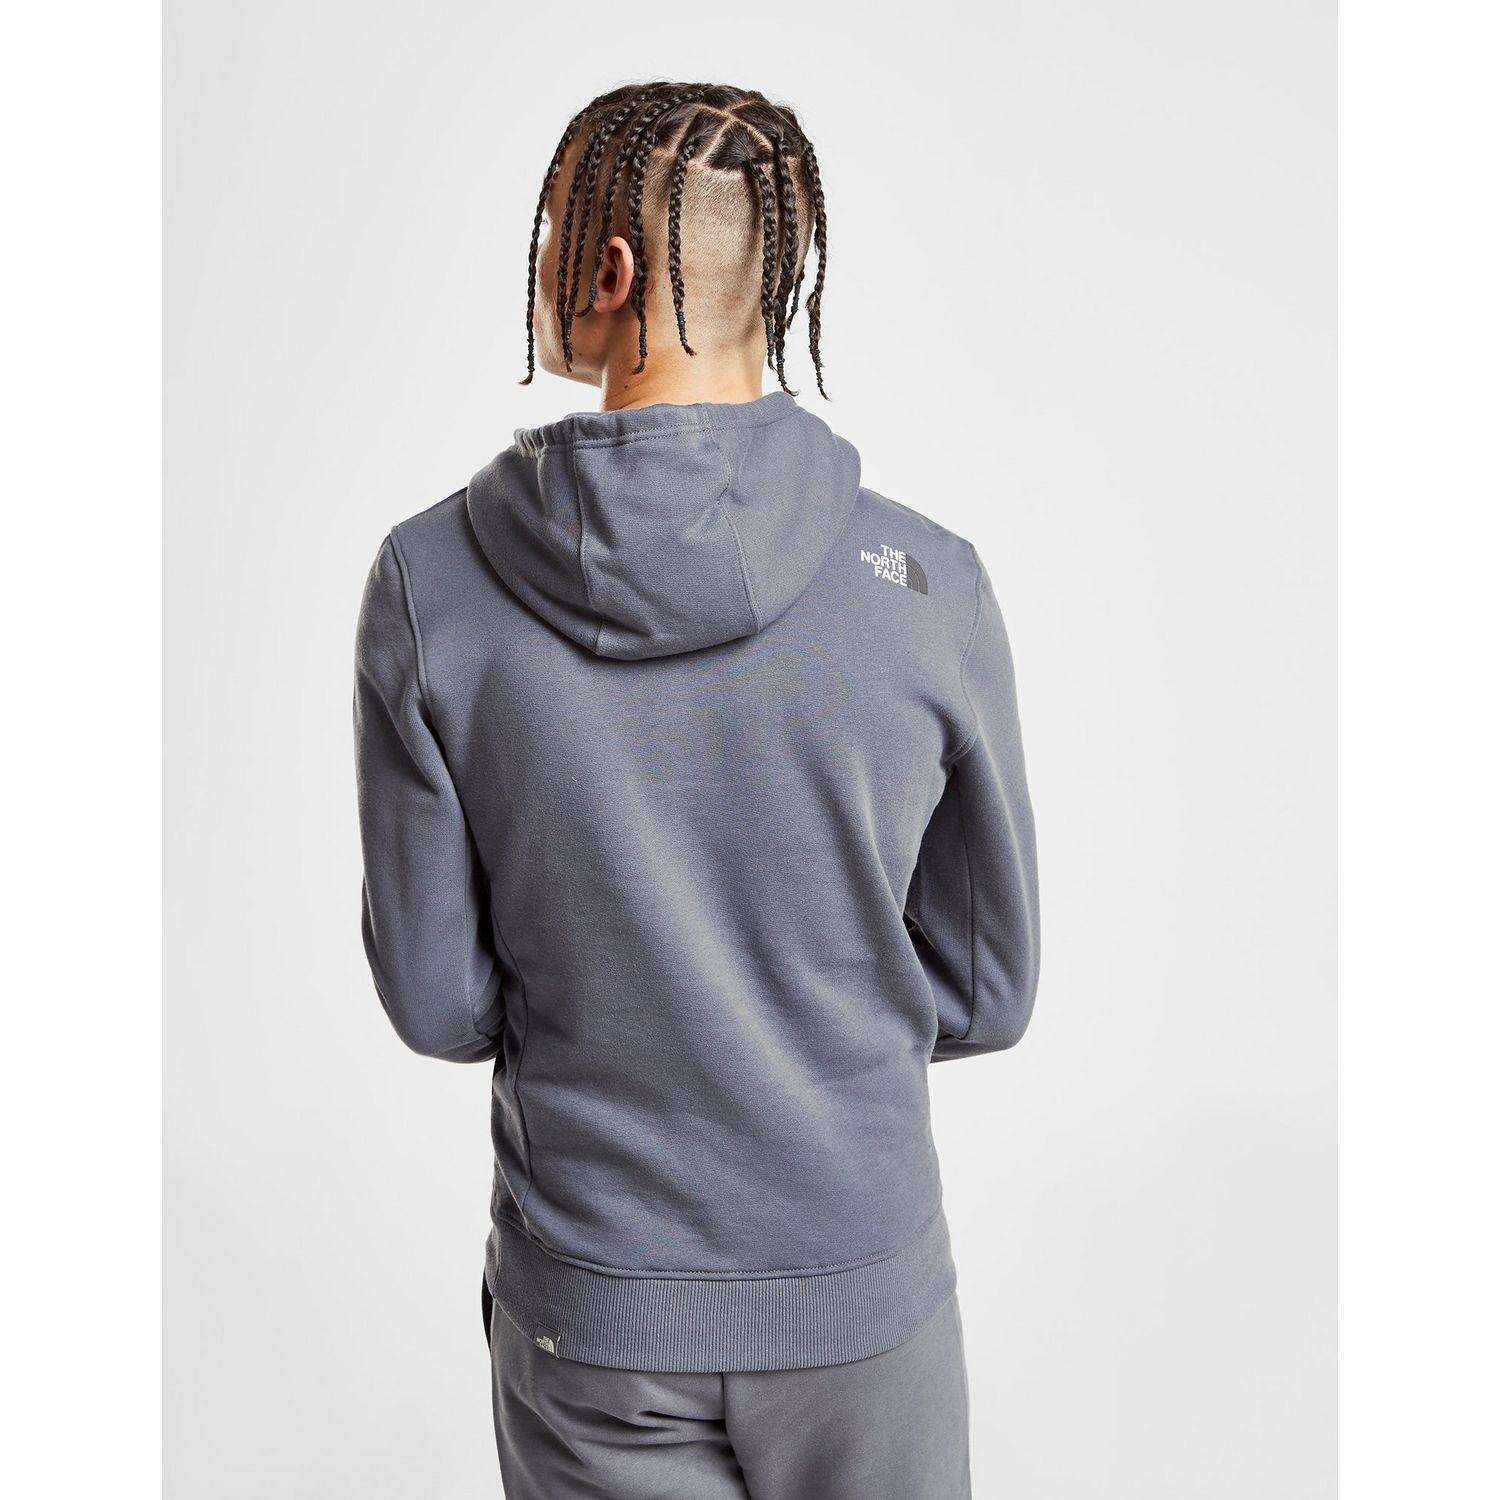 fa4fdcc43 The North Face Gray Bondi Overhead Fleece Hoodie for men